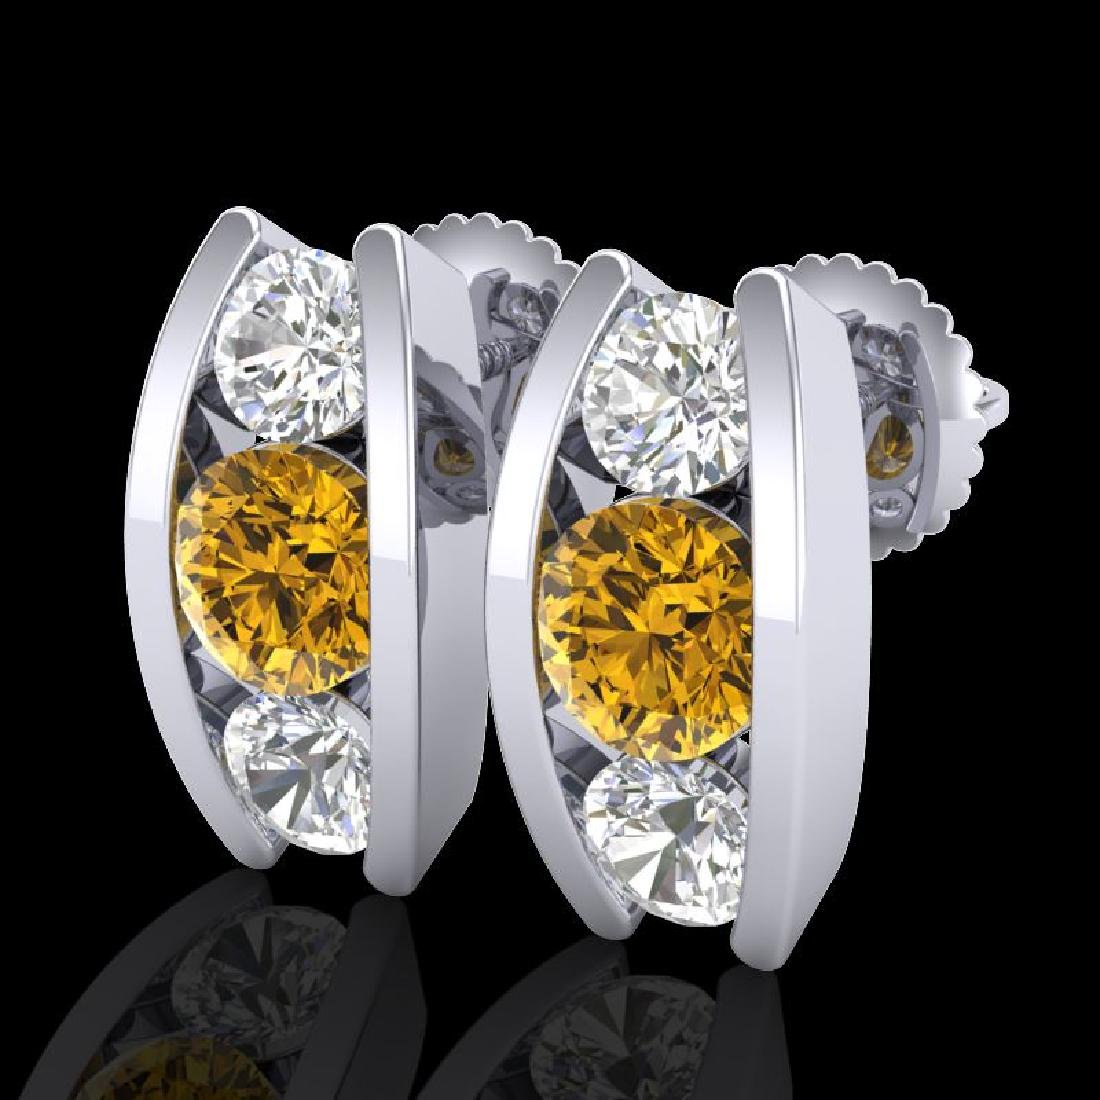 2.18 CTW Intense Fancy Yellow Diamond Art Deco Stud